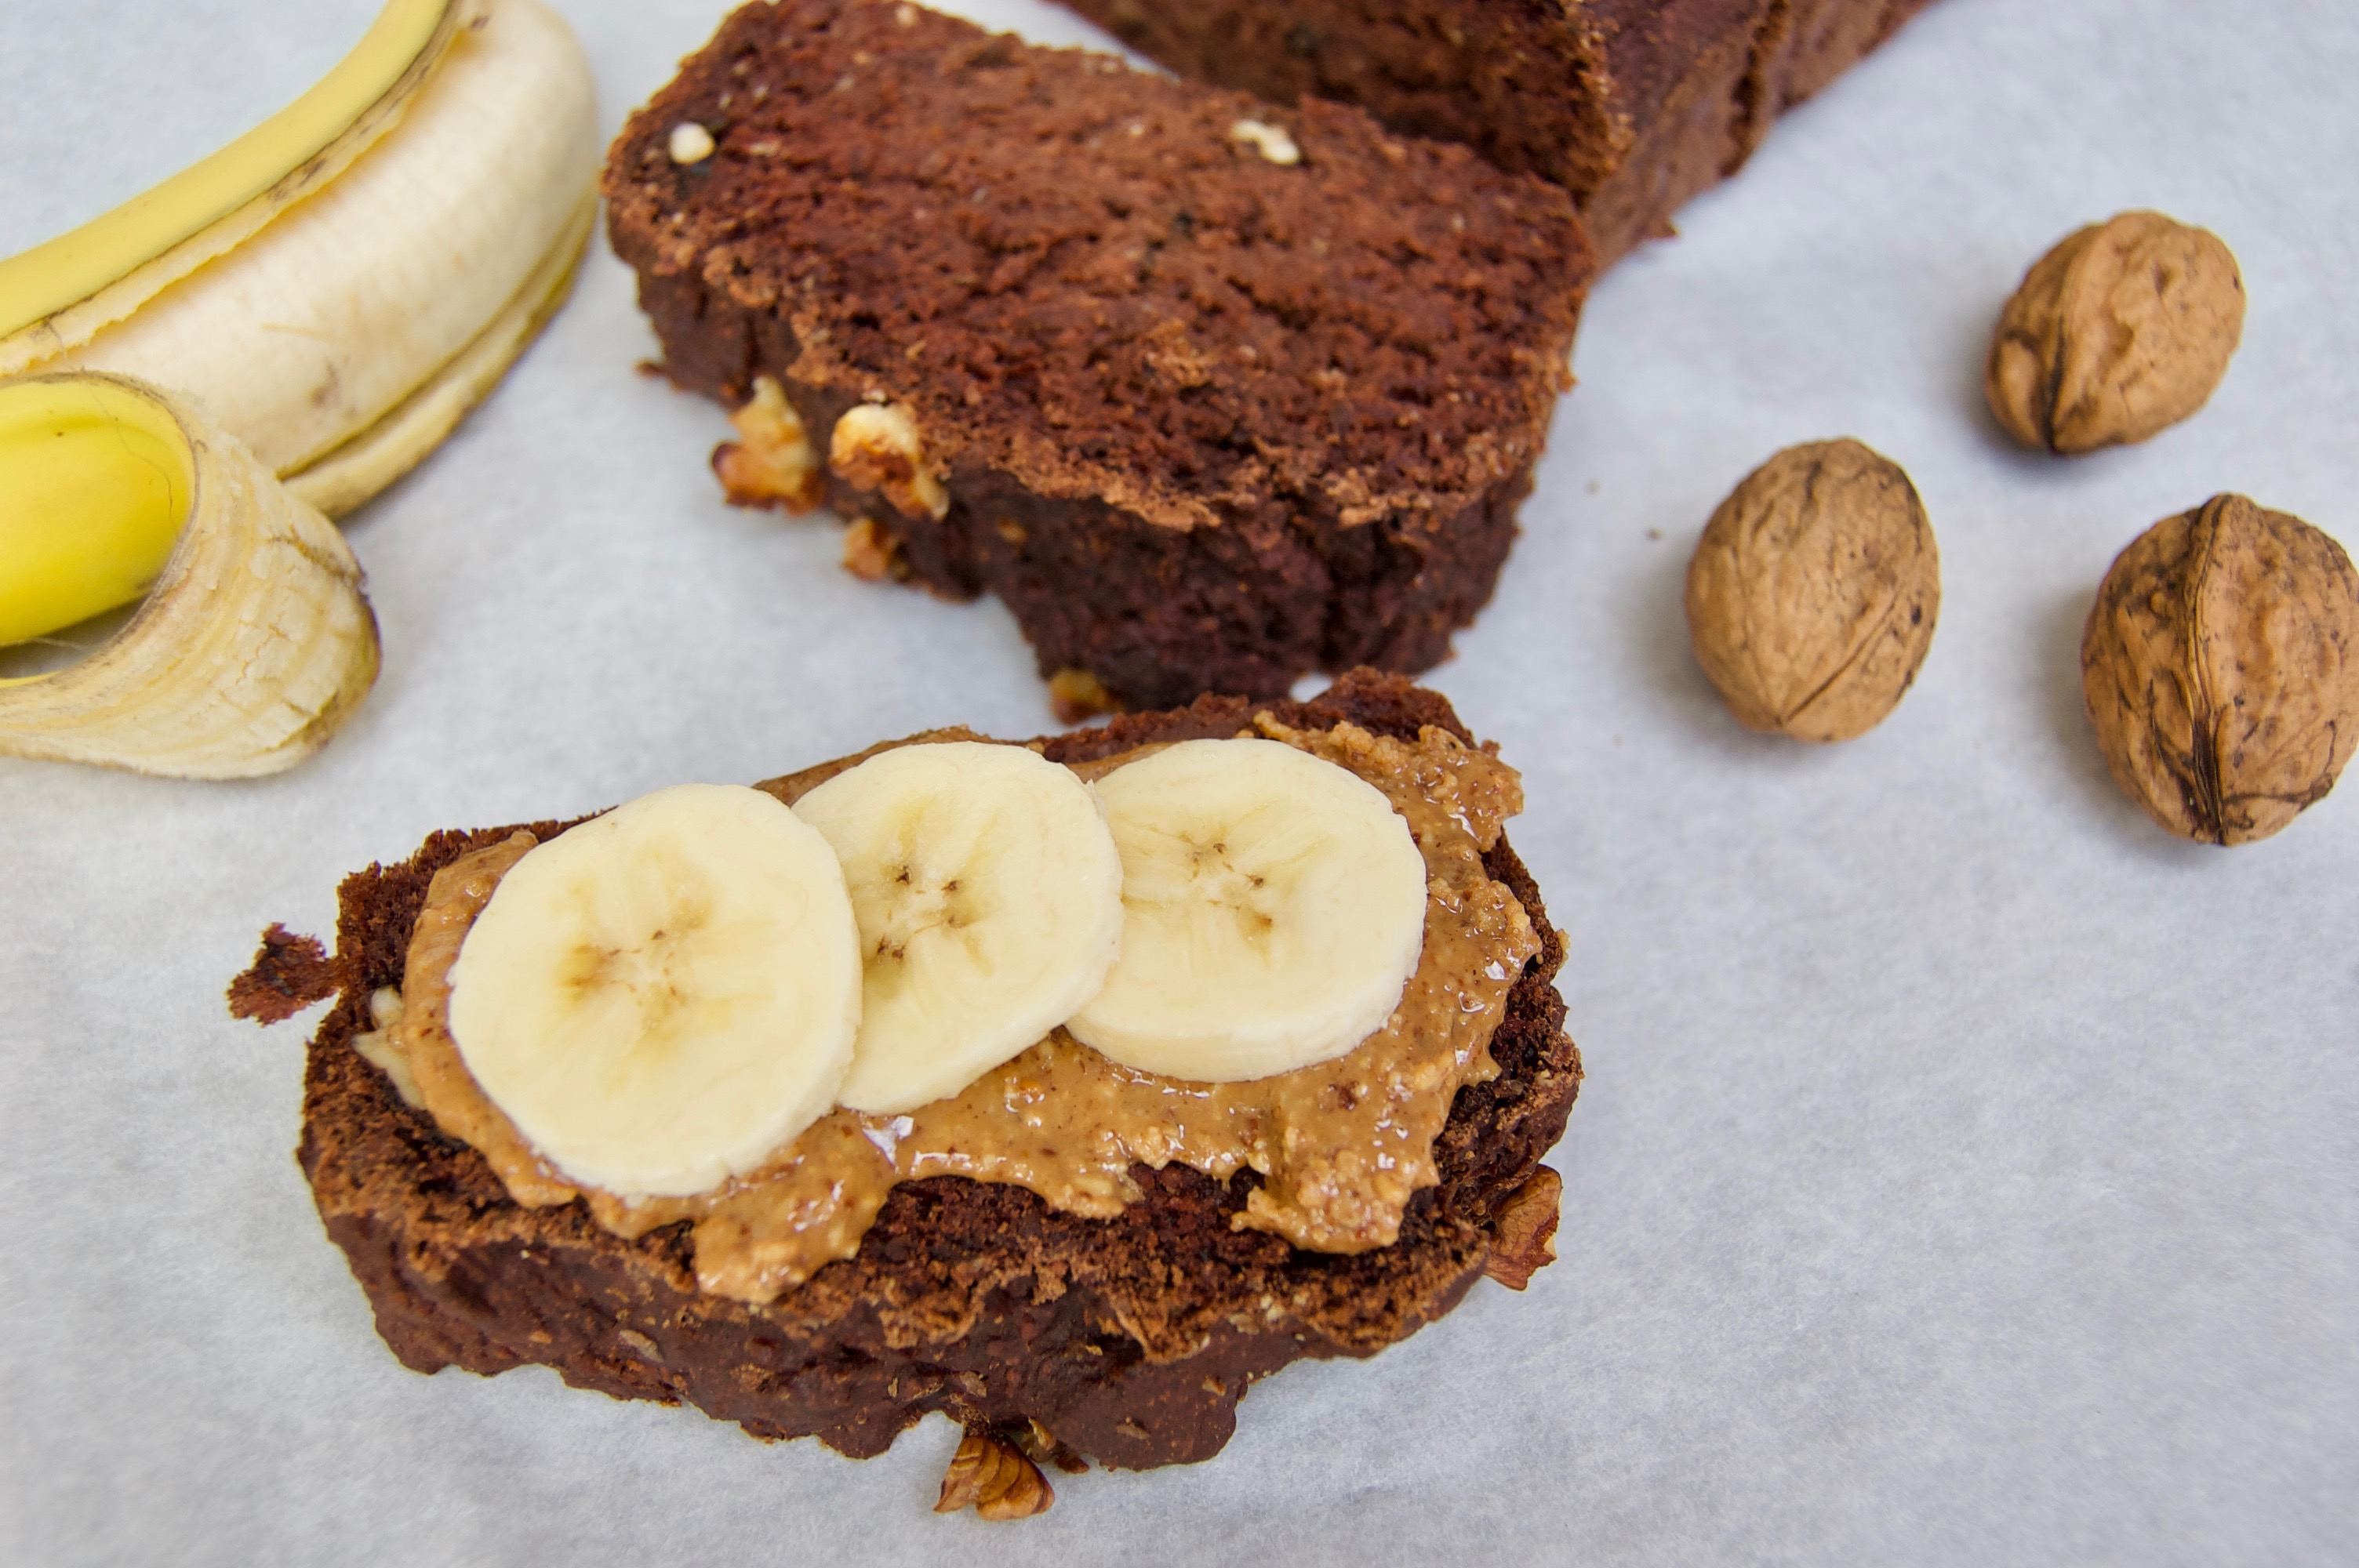 vegan bananen chocolade brood